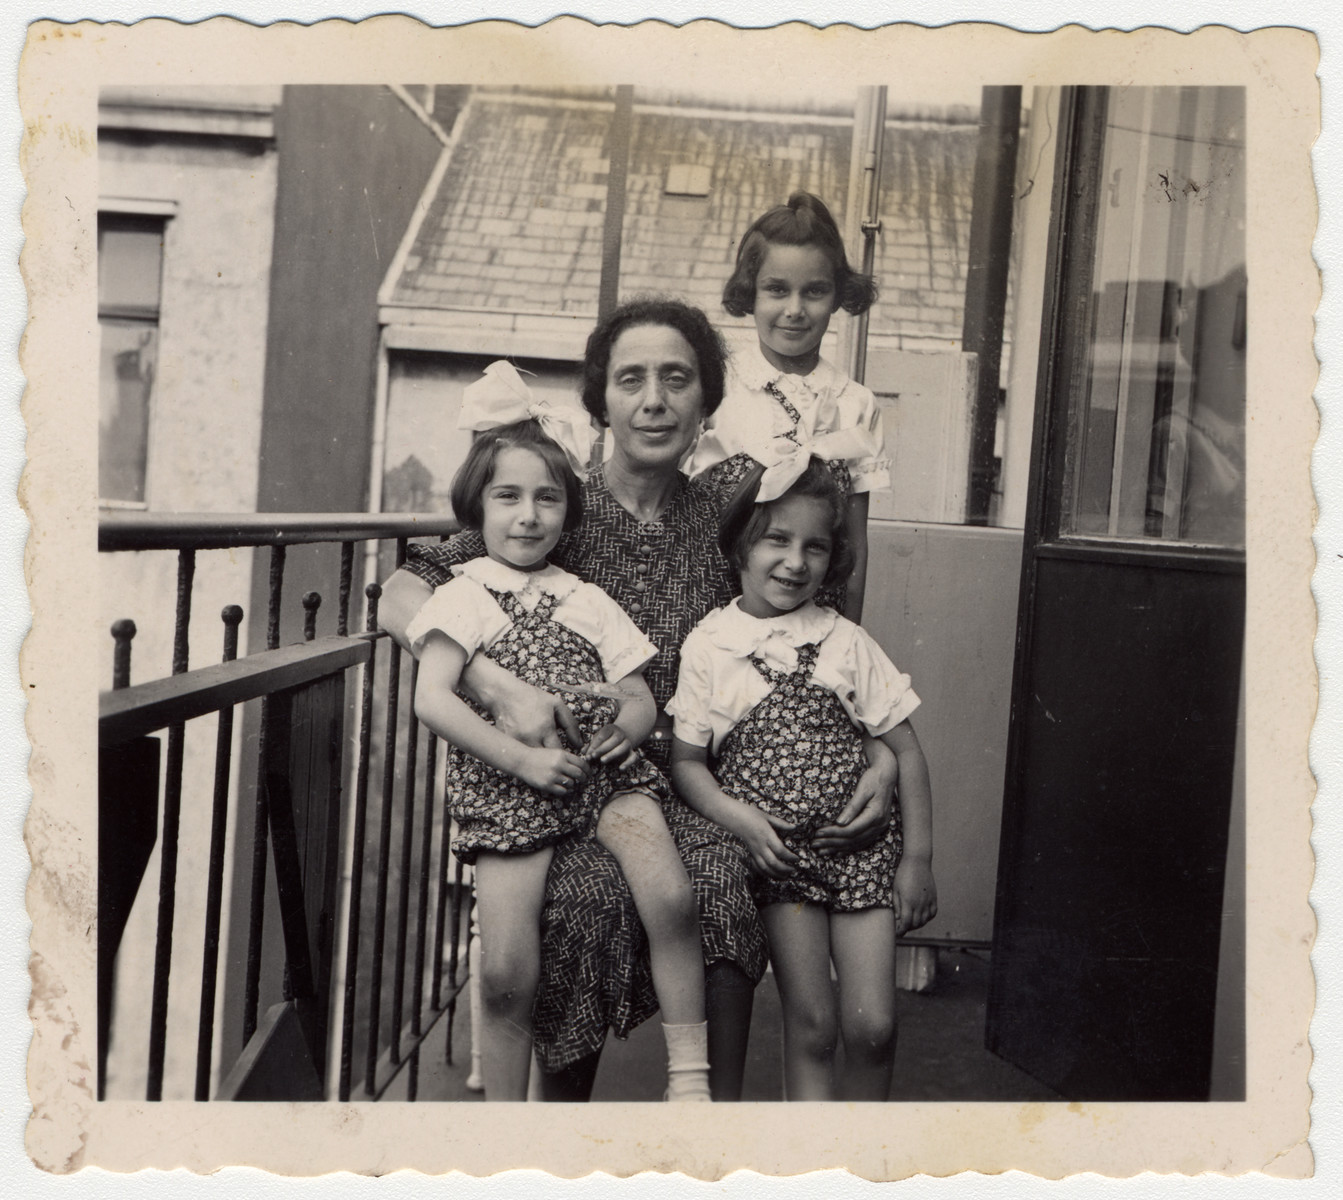 Three Jewish sisters pay a visit to their aunt prior to their departure for the United States.  Pictured are Karen, Renate and Marion Gumprecht and Beatrice Levi.  Beatrice Levi later perished in Riga.